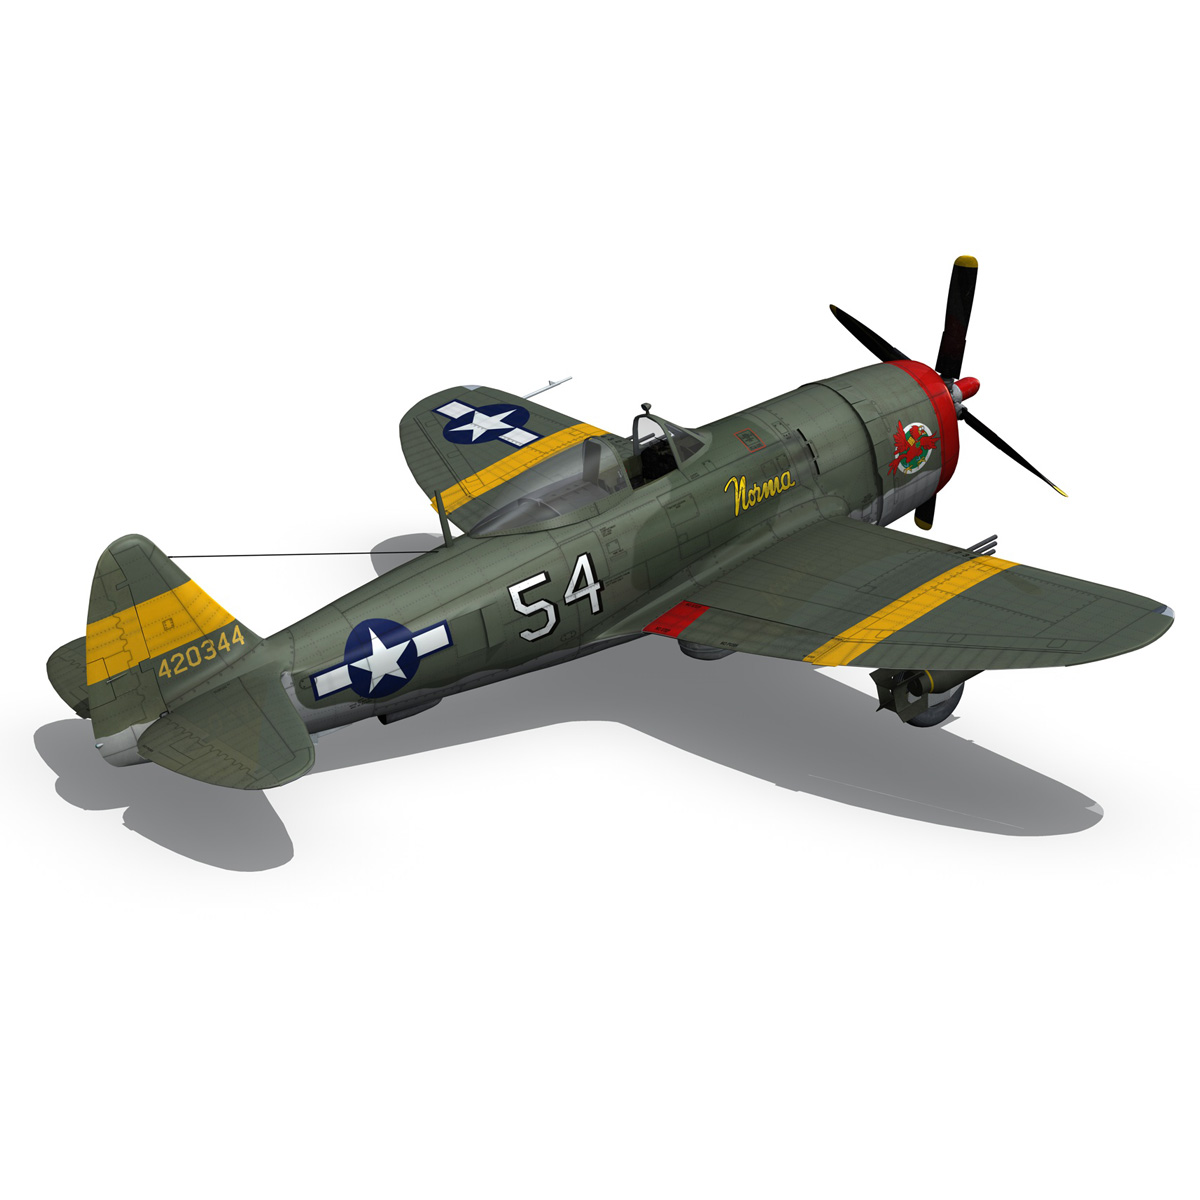 republic p-47d thunderbolt – little bunny 3d model fbx c4d lwo obj 274231